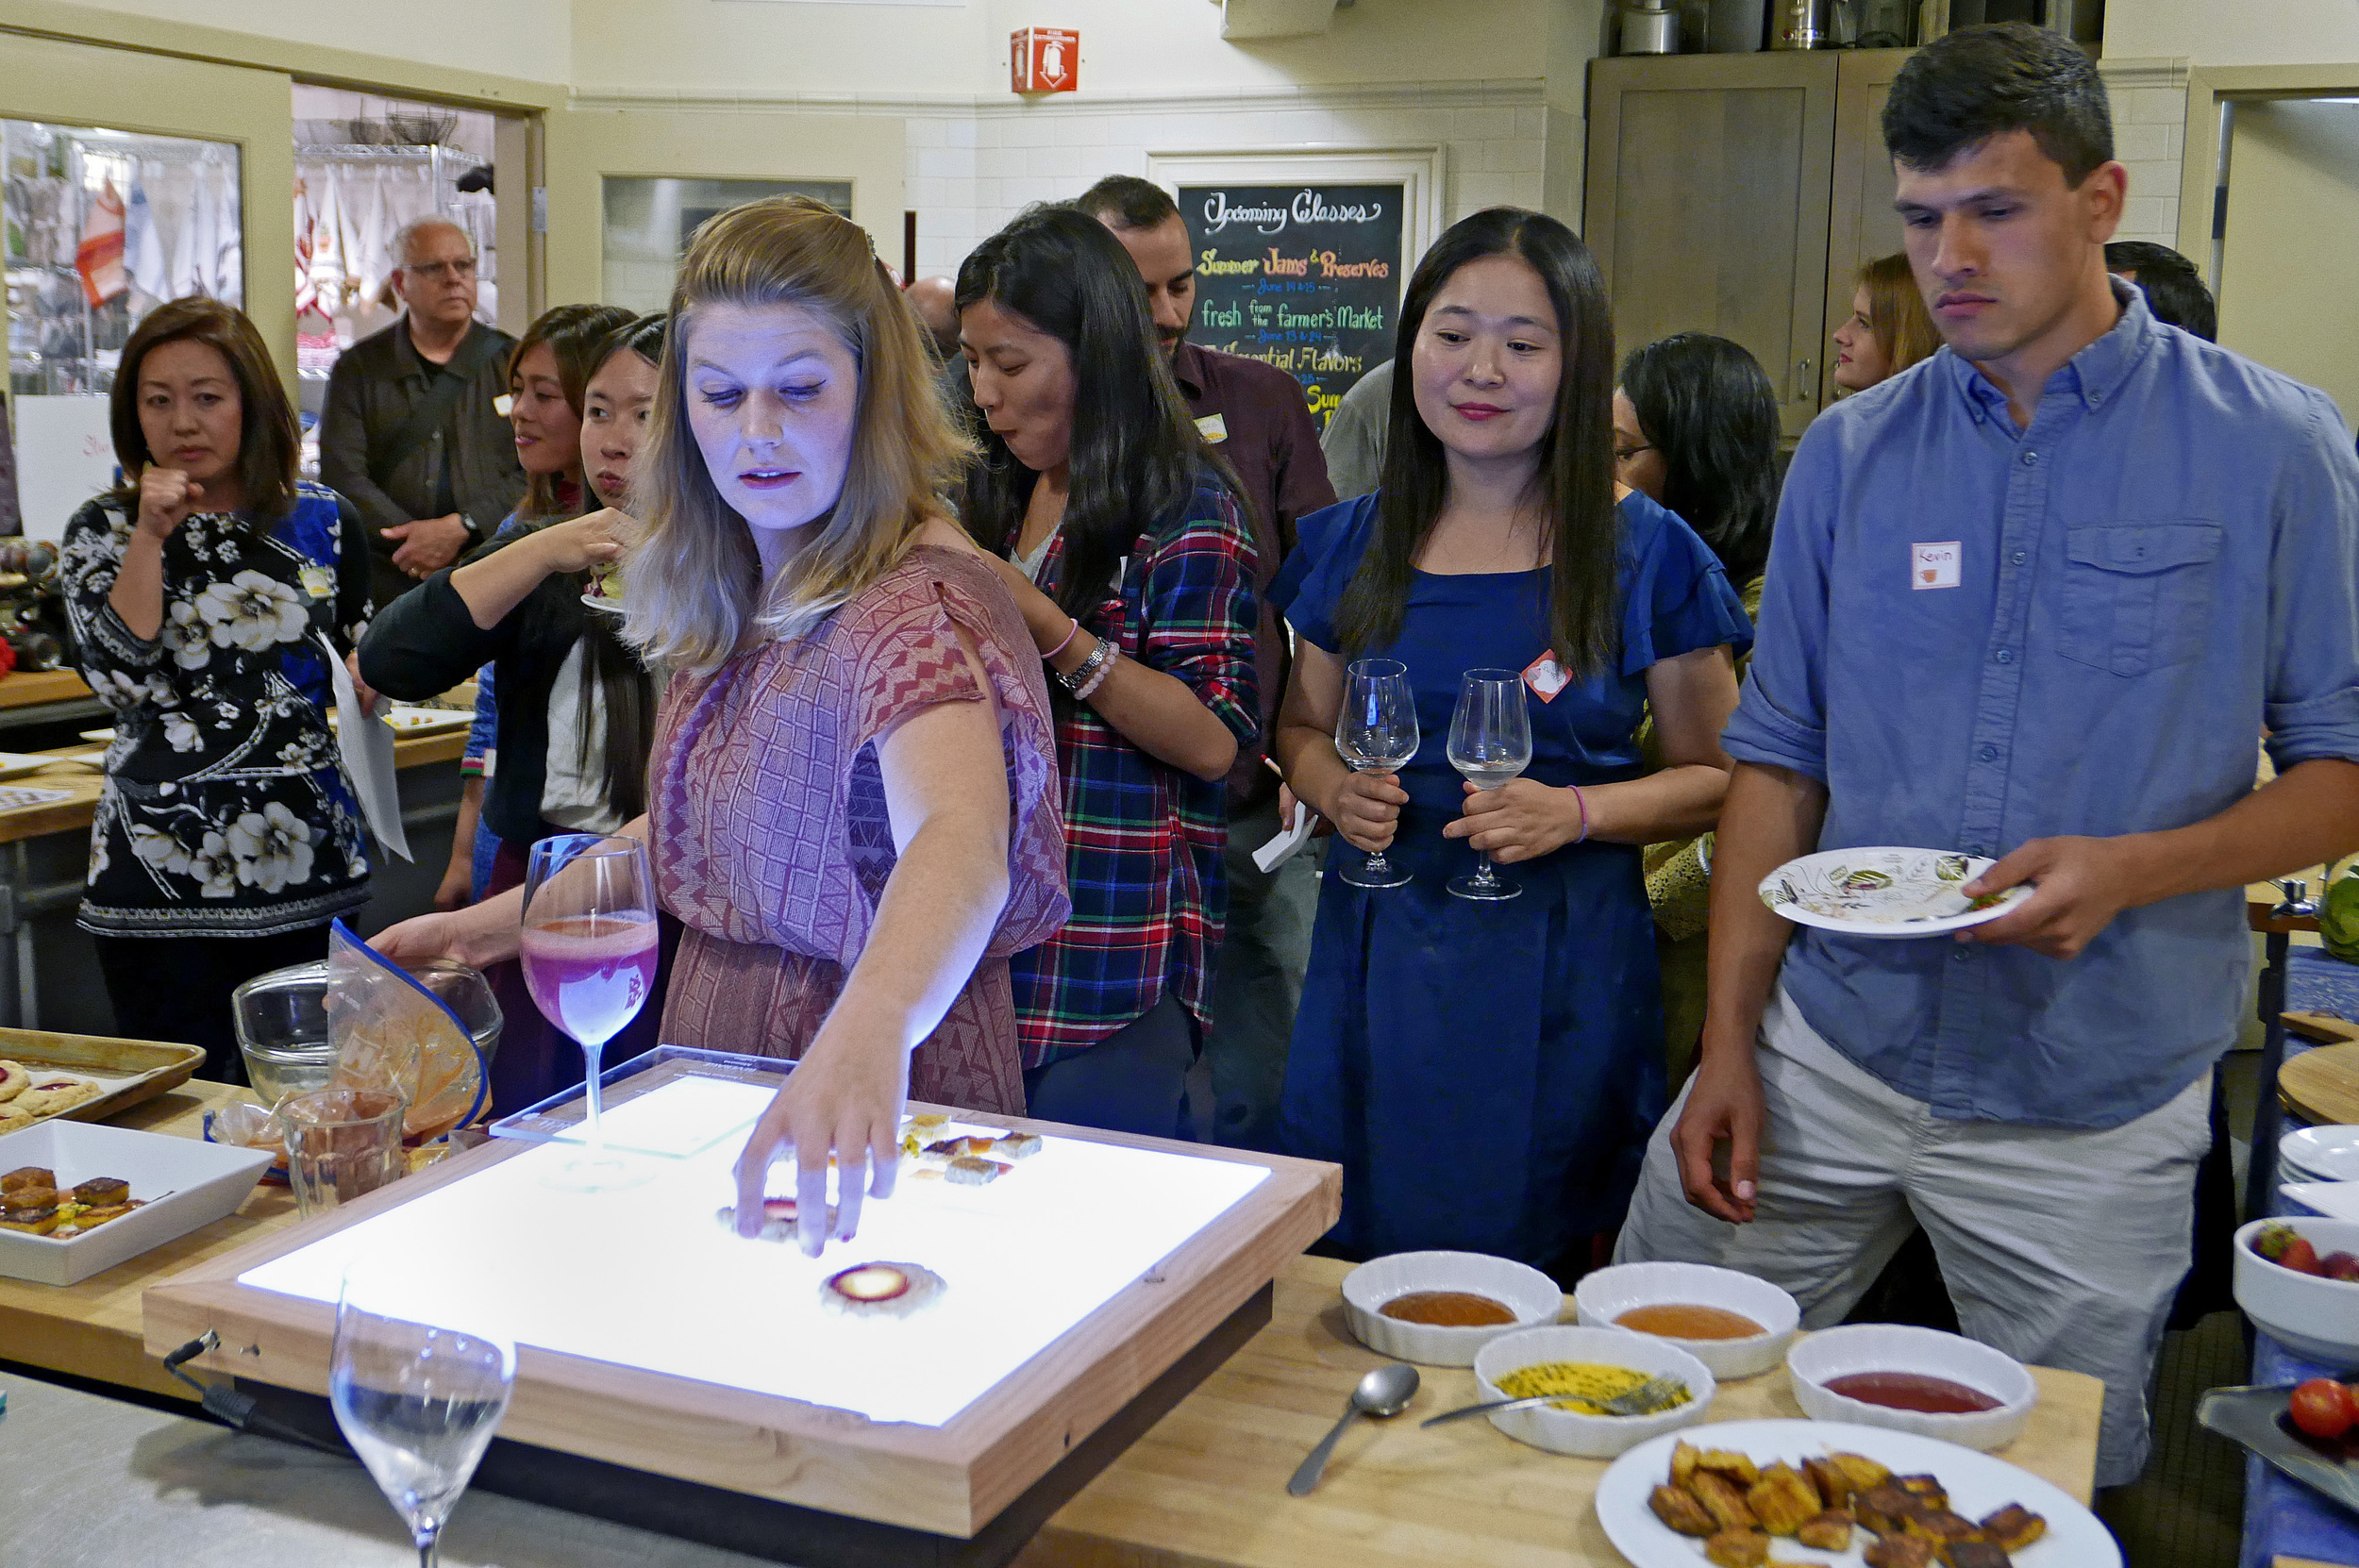 stanford-food-experience-design_18471712906_o.jpg